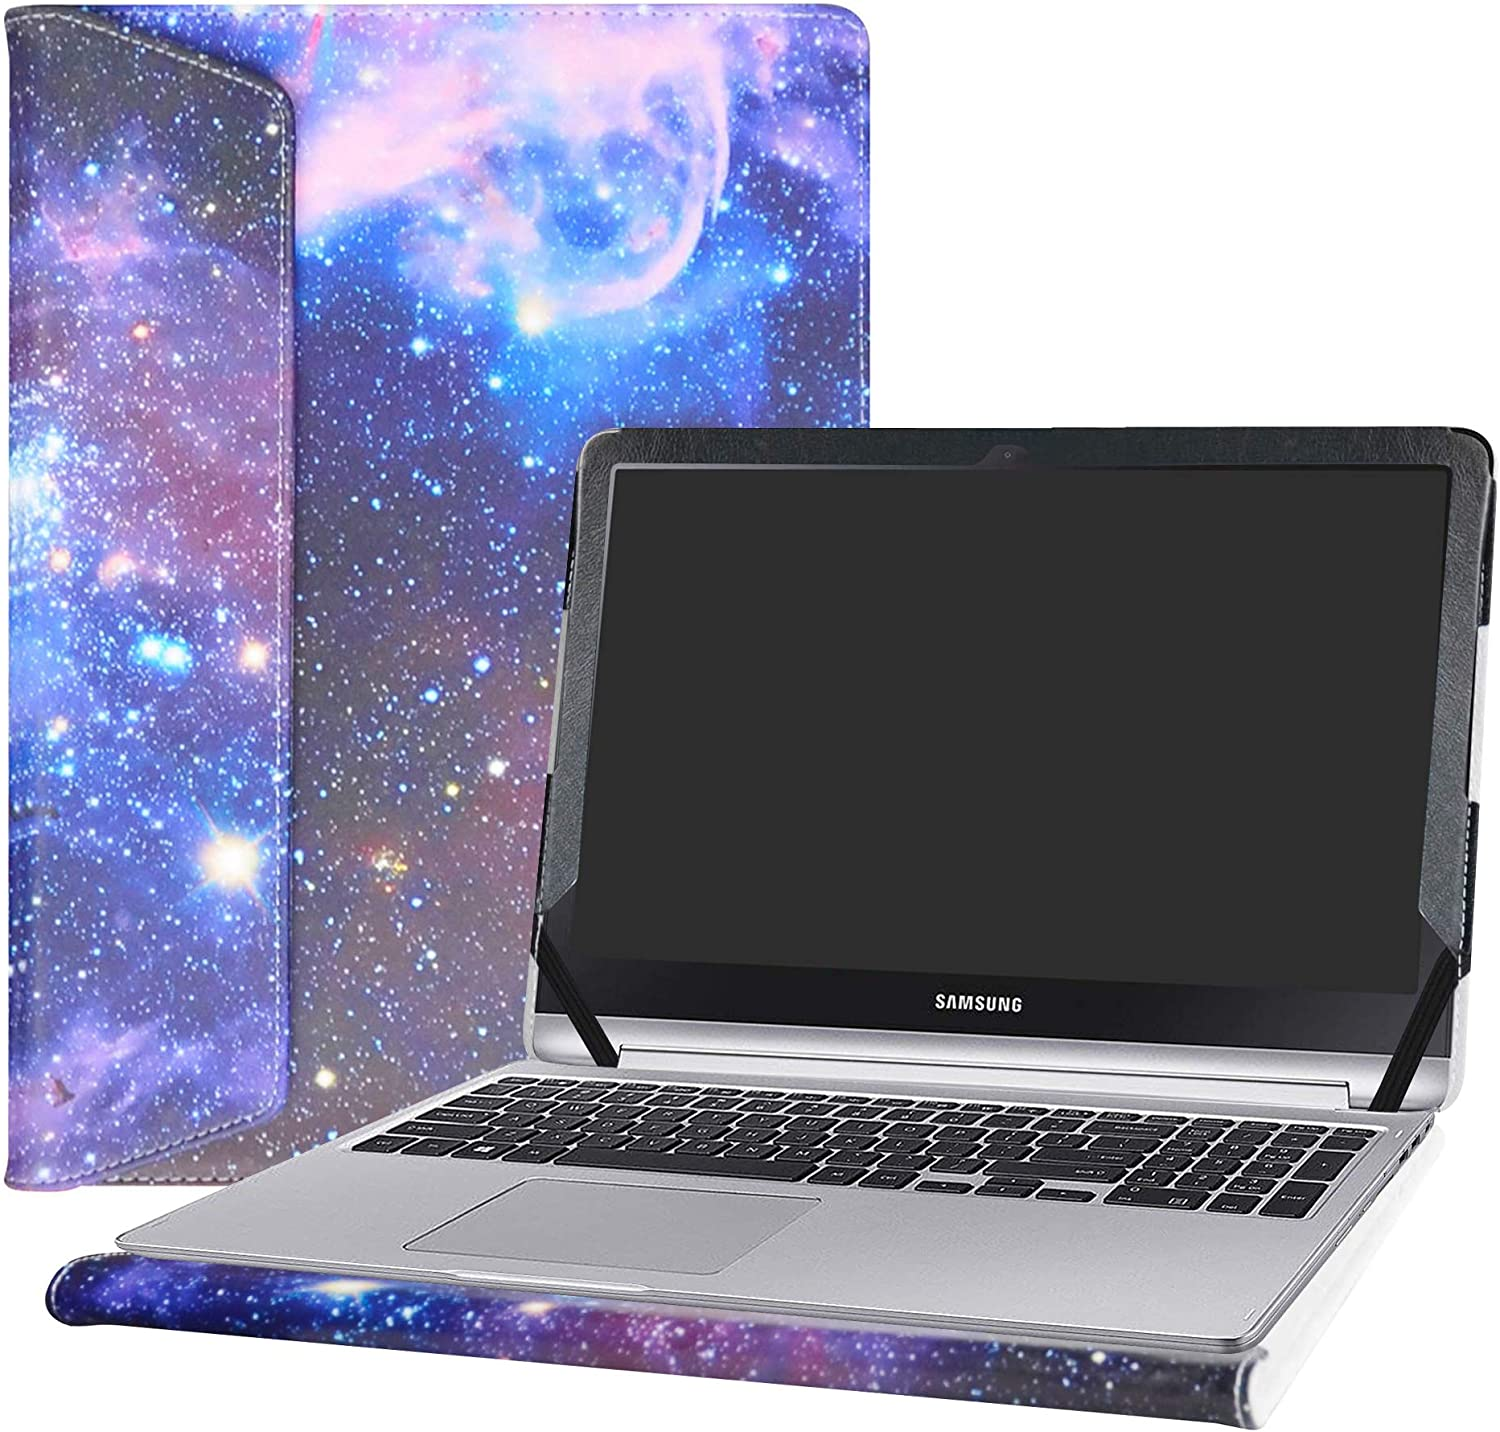 """Alapmk Protective Case Cover for 15.6"""" Samsung Notebook 7 Spin 15 NP740U5L NP740U5M Series Laptop(Warning:Not Fit Samsung Notebook 7 Spin 13/Notebook 5/Notebook 9),Galaxy"""